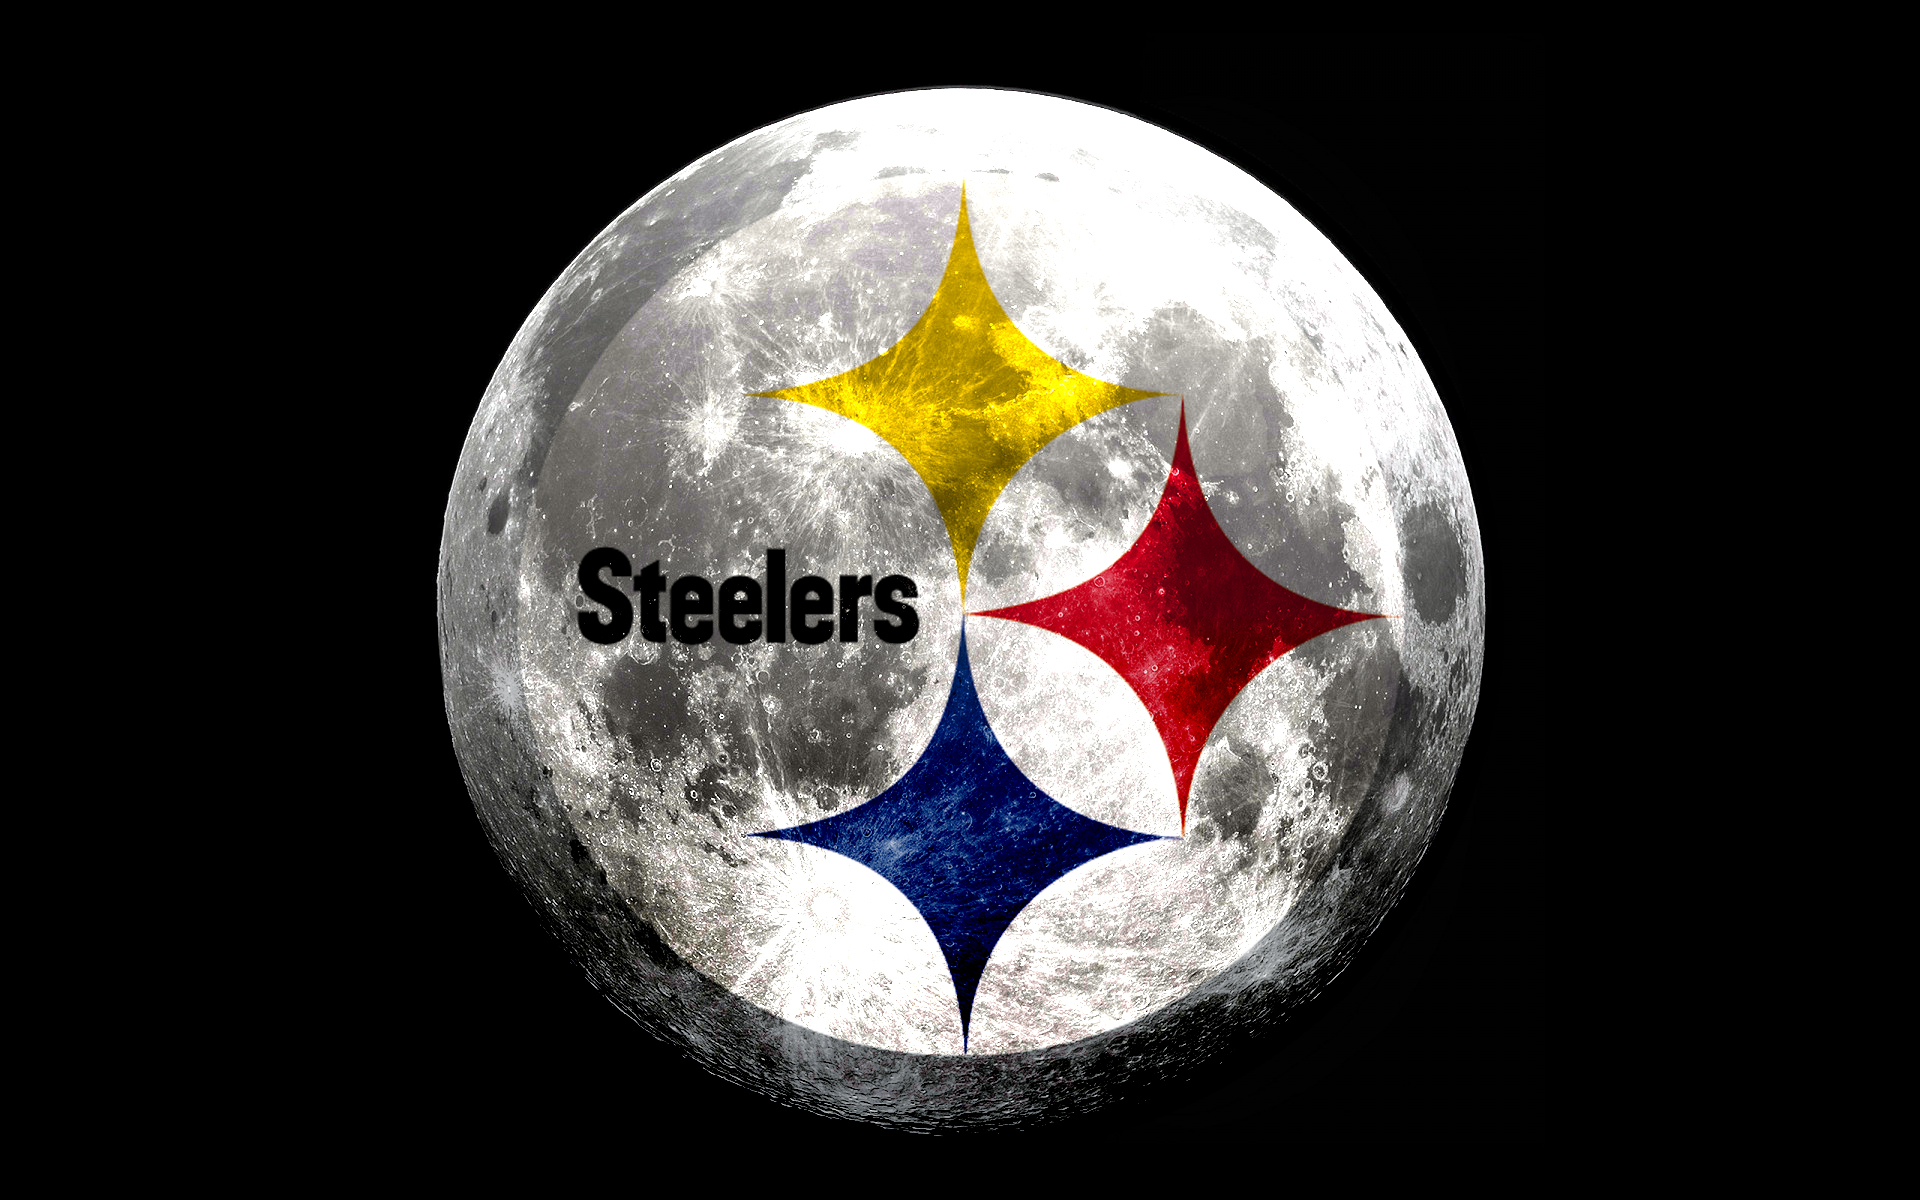 More Steelers Wallpapers loaded up 1920x1200